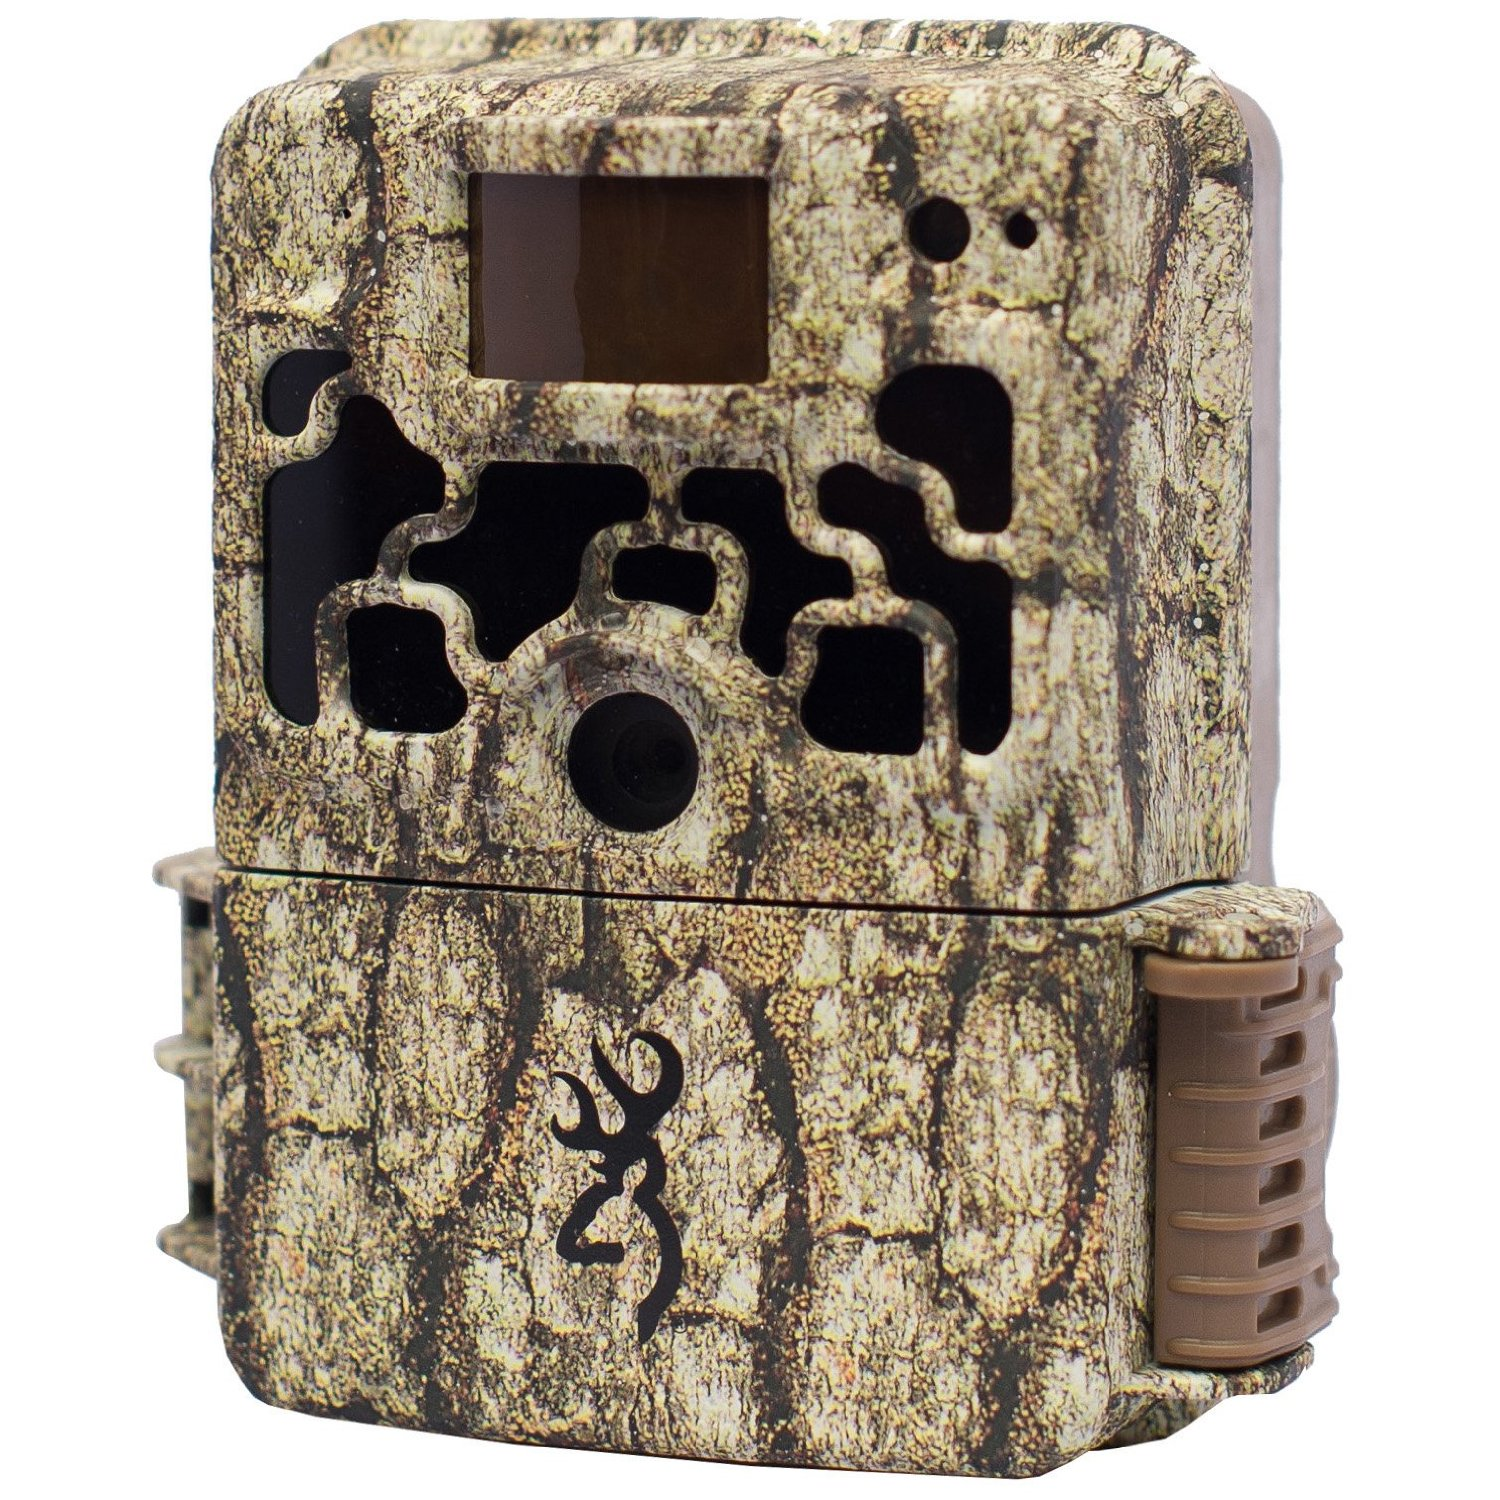 What's The Best Trail Camera? - (Reviews & Guide 2017)